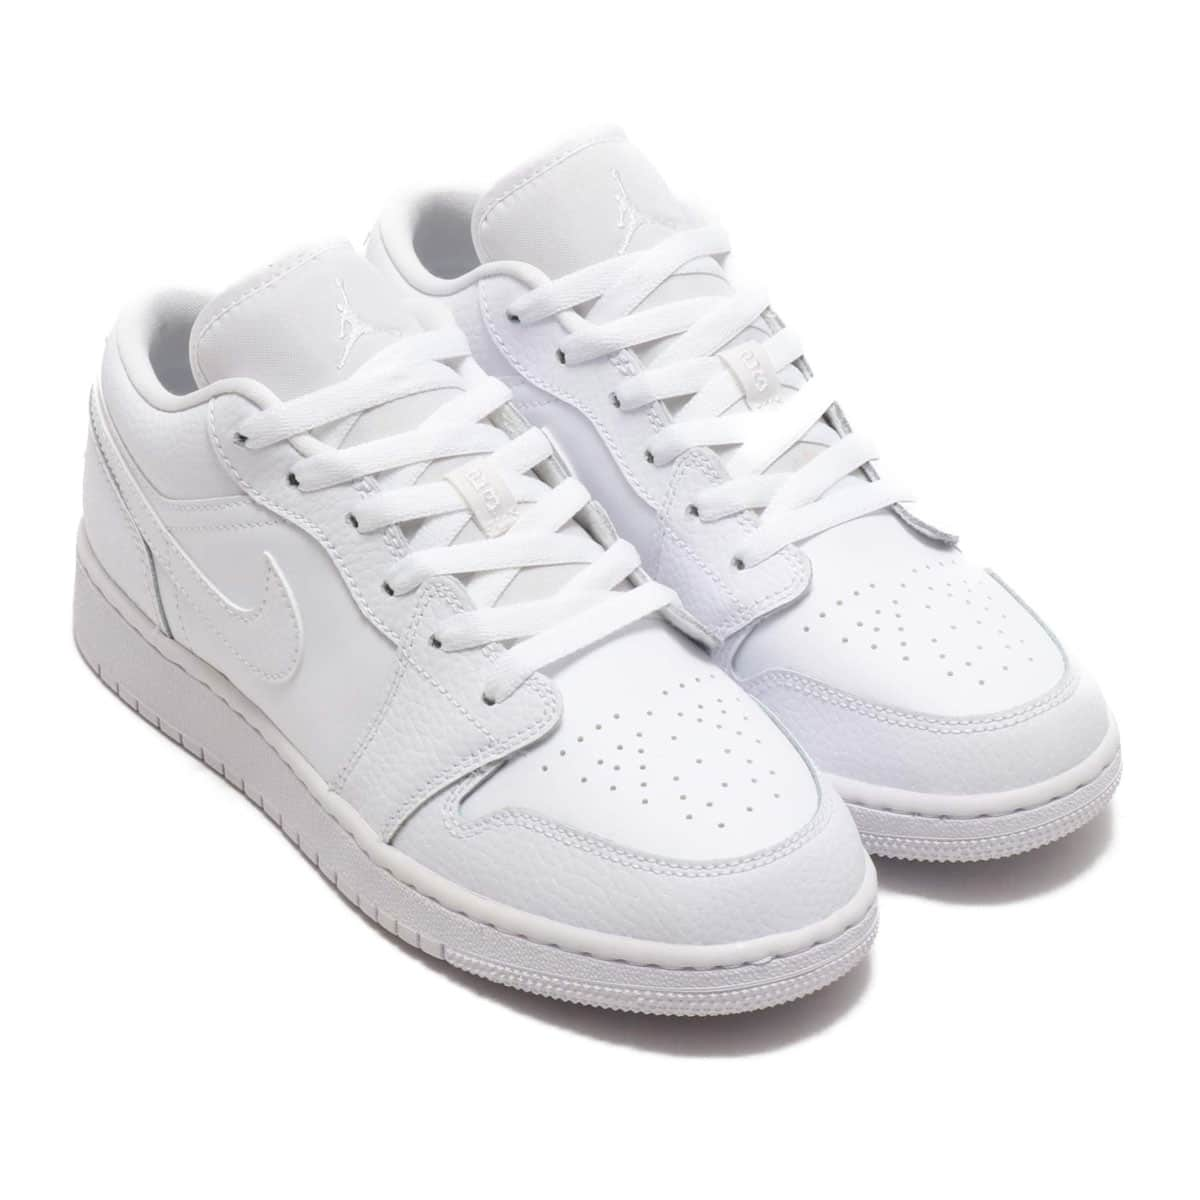 JORDAN BRAND AIR JORDAN 1 LOW (GS) WHITE/WHITE-WHITE 20SU-S_photo_large